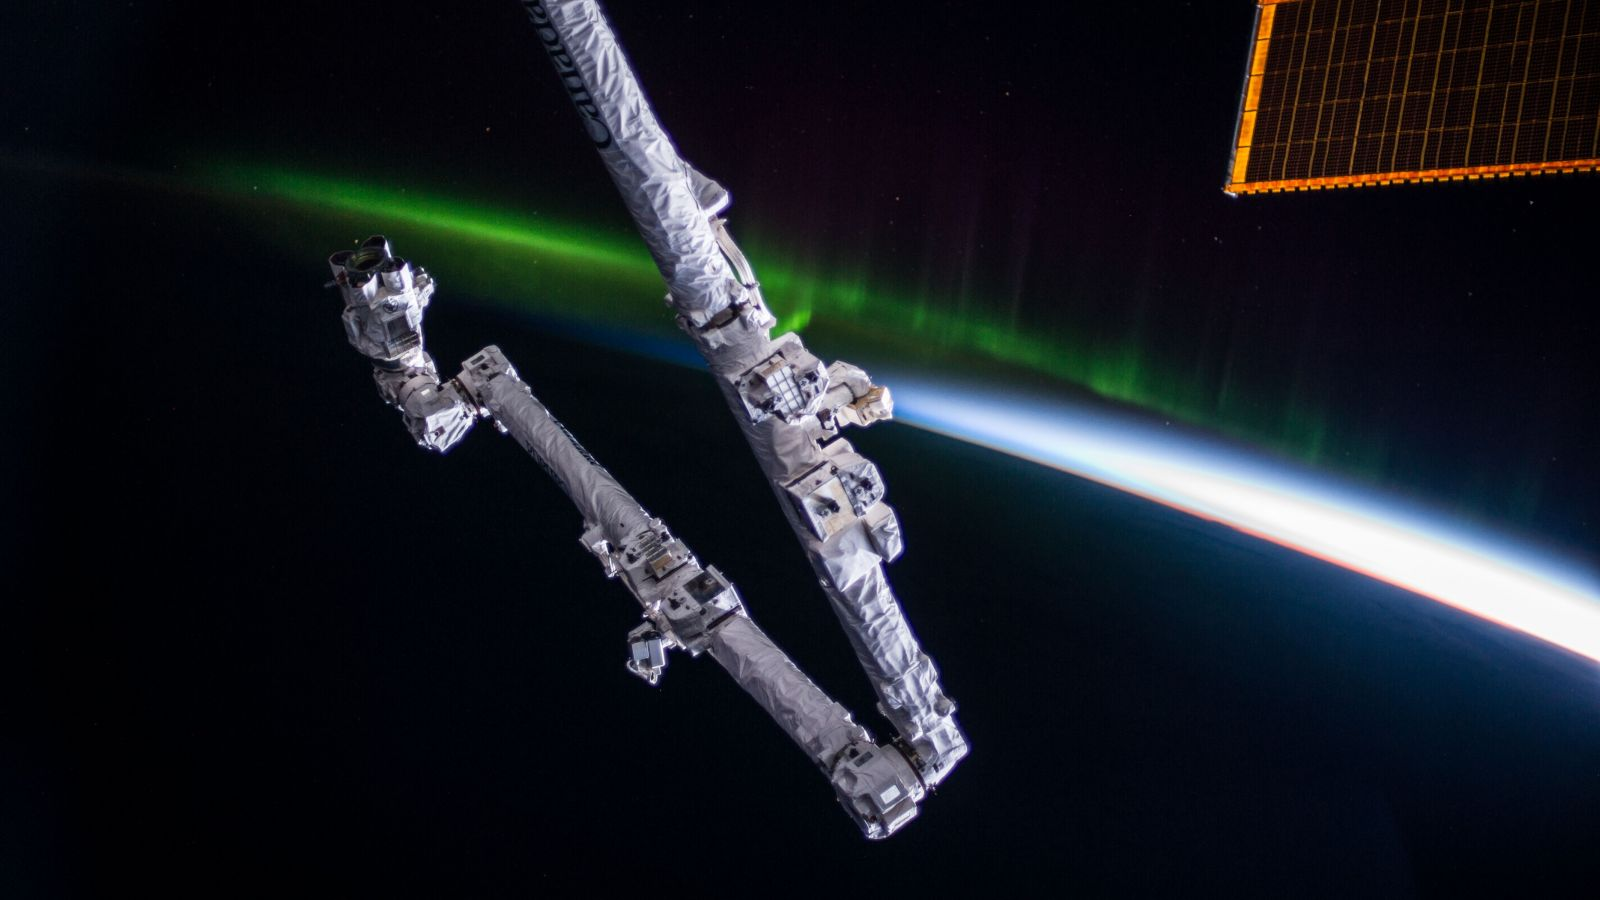 Canadarm2 attached to the ISS with an aurora in the background. Photo Credit: NASA